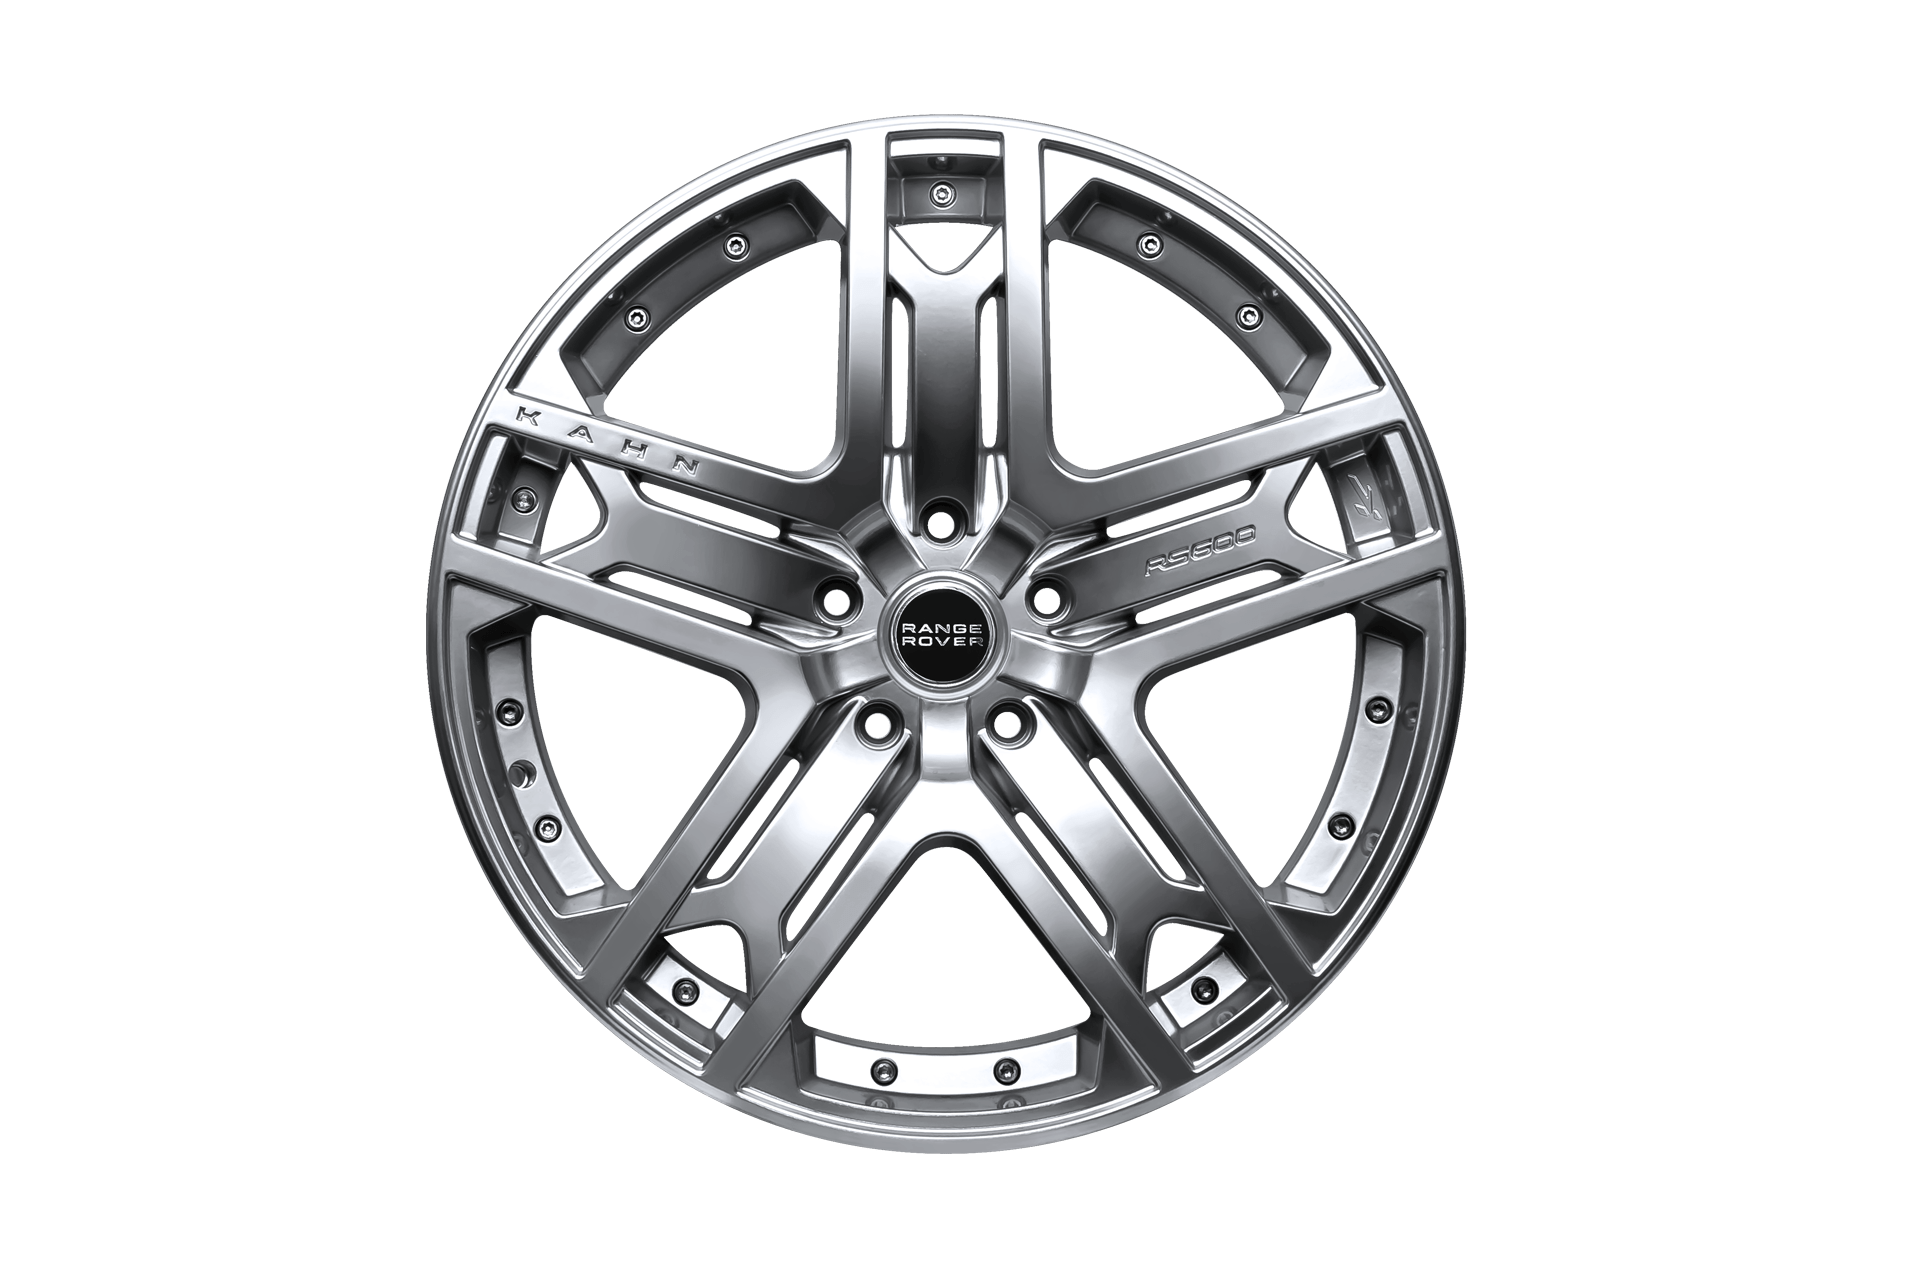 Range Rover Sport (2013-2018) Rs600 Light Alloy Wheels by Kahn - Image 3387